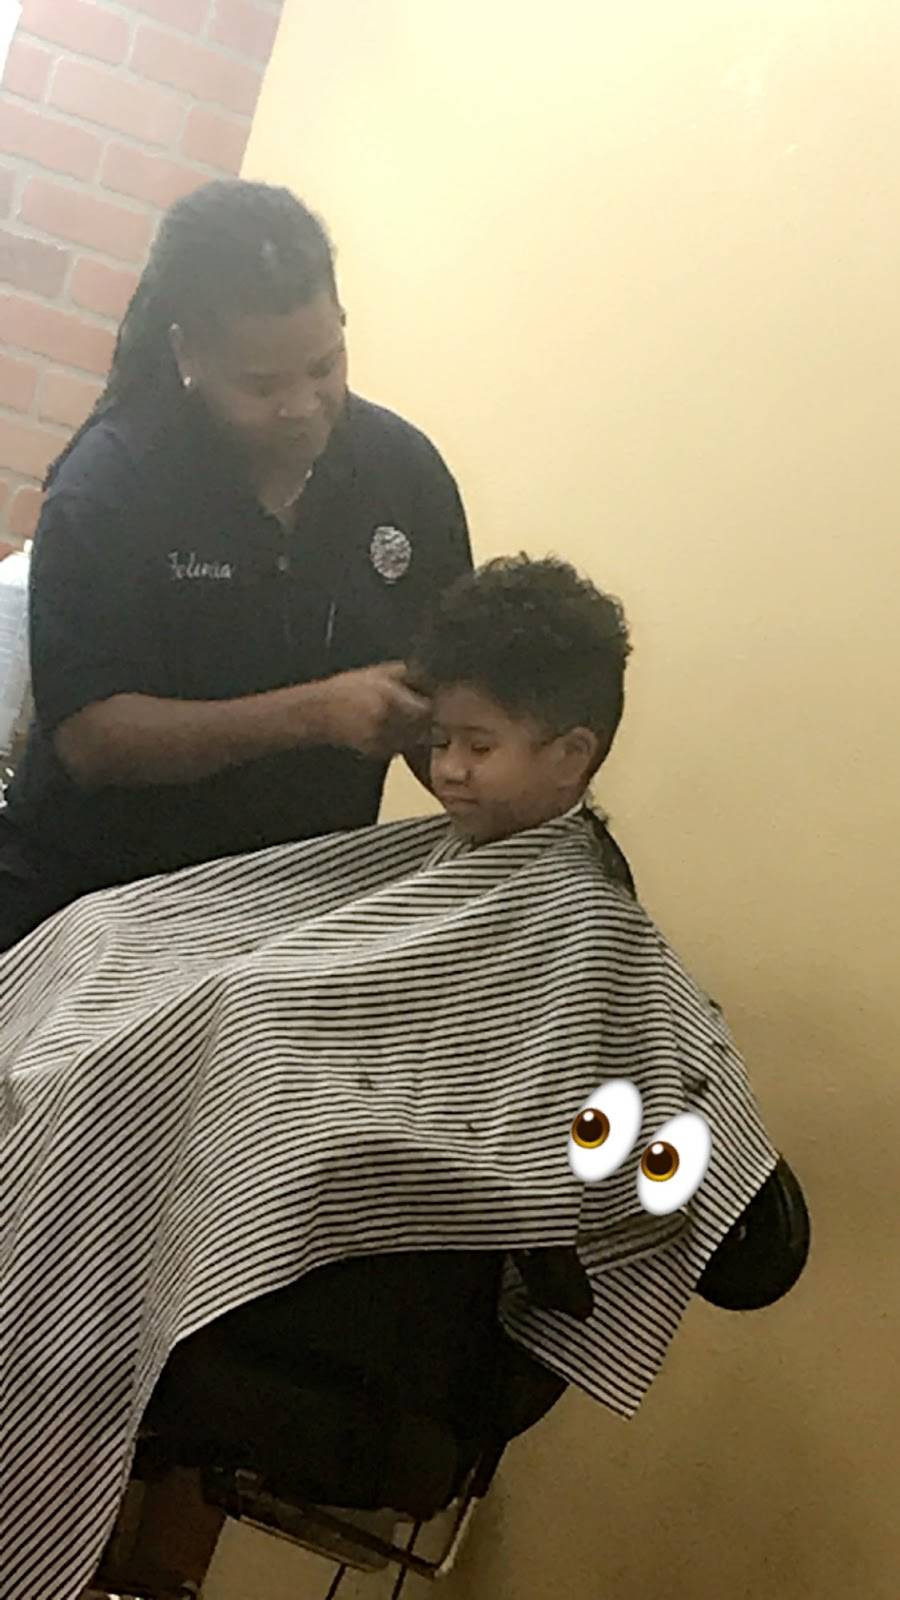 The Fade And Shave Bar - hair care  | Photo 7 of 7 | Address: 5529 James Ave #121, Fort Worth, TX 76115, USA | Phone: (682) 707-5619